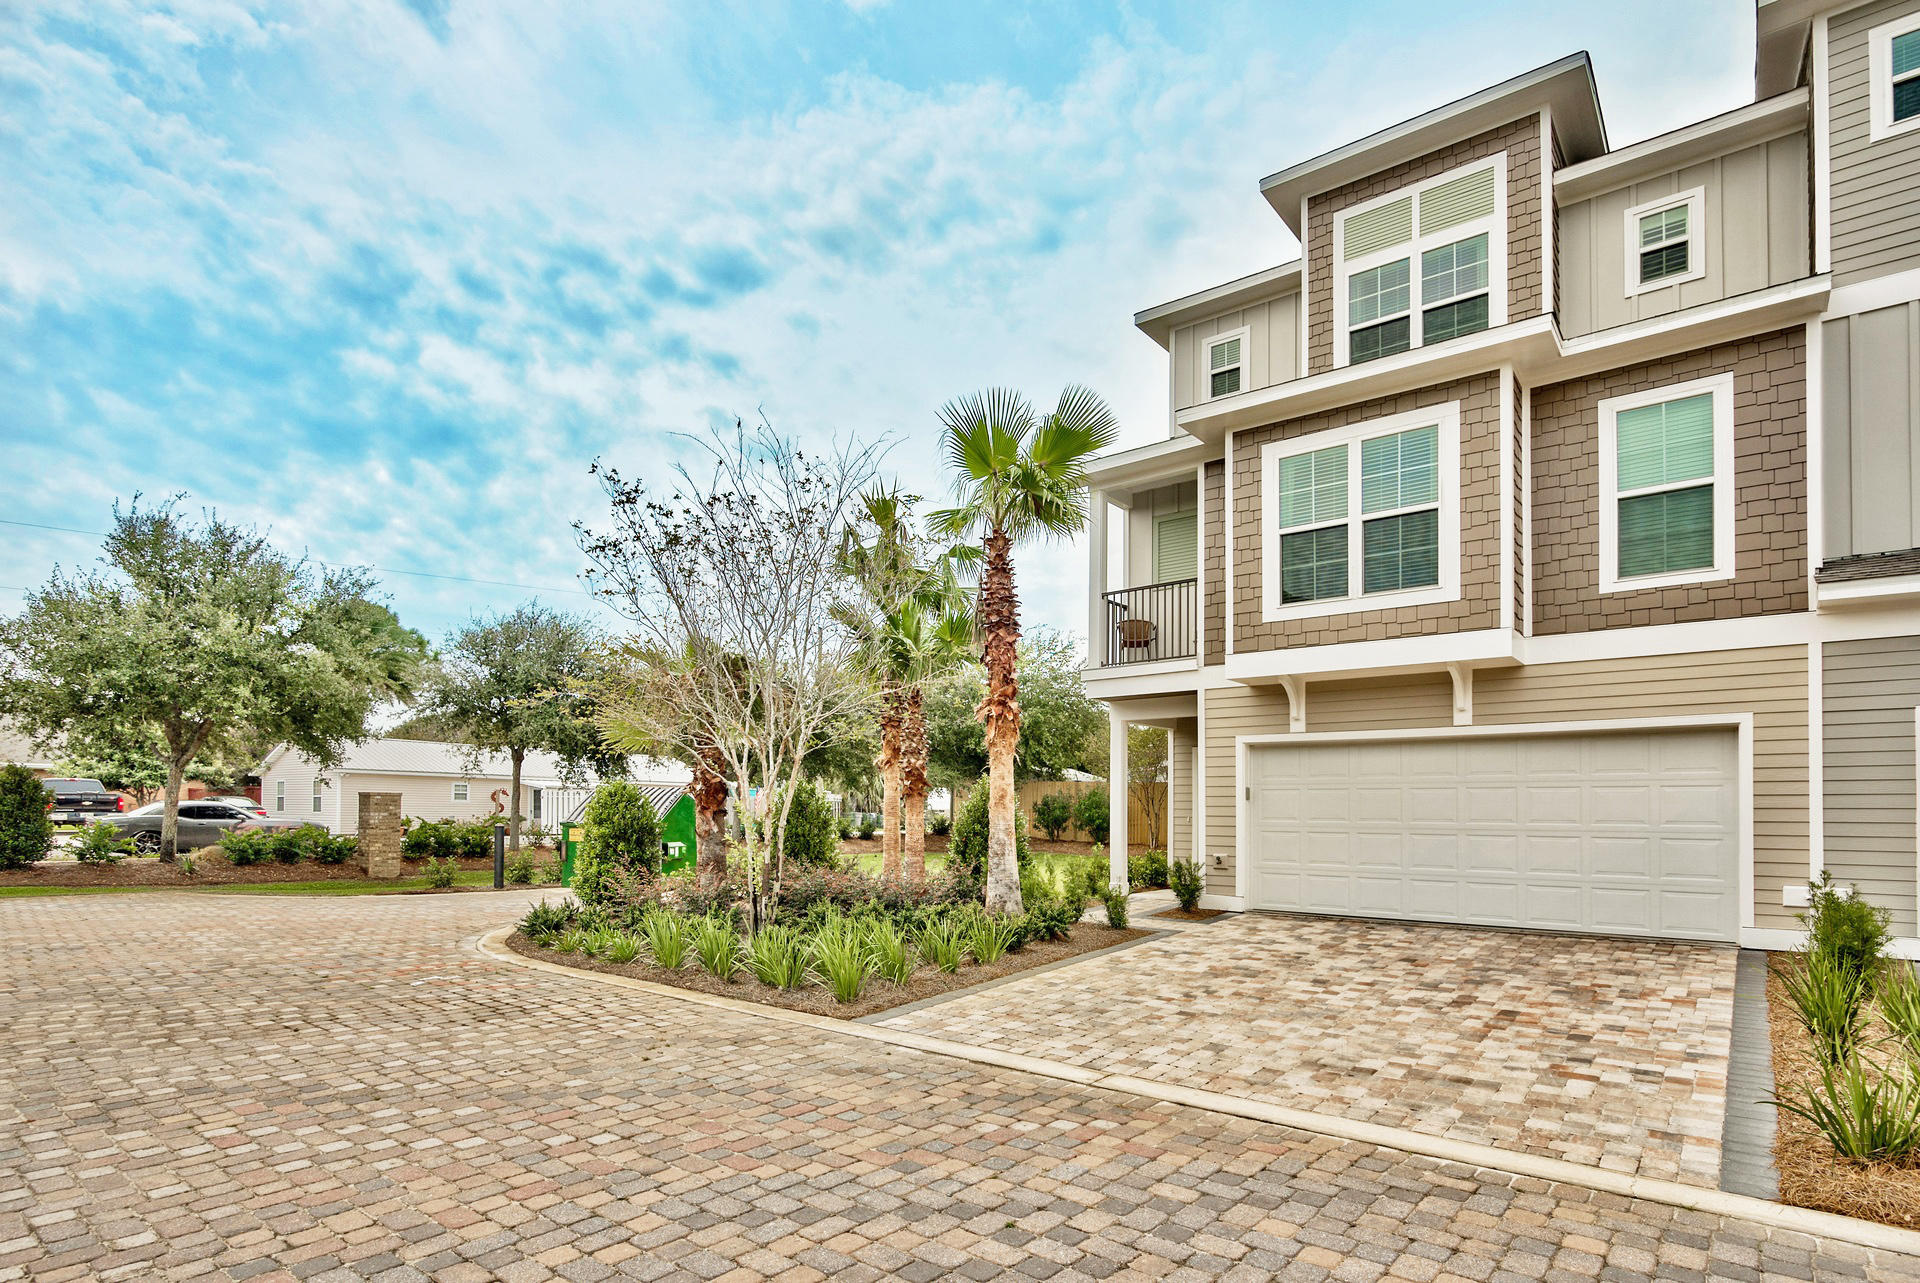 This stunning 5 bedroom home, just 700' from access to the beach and gulf front restaurants, is an investors dream! The curb appeal of this development is a beautiful introduction to what you'll find when you step inside. This dream beach home boasts 3-stories of oak hardwood and porcelain tile floors, stainless steel Frigidaire appliances, crown molding, impact resistant doors and windows, 9' ceilings, and 2 sets of washer/dryers. Other features include: 50 gallon water tank, 3 Carrier heat pump AC units (one per floor), 2-car tiled and insulated garage, and a brick paver driveway. The home is also a Certified Earth Cents home; meaning, it exceeds Florida's current energy efficient building codes.